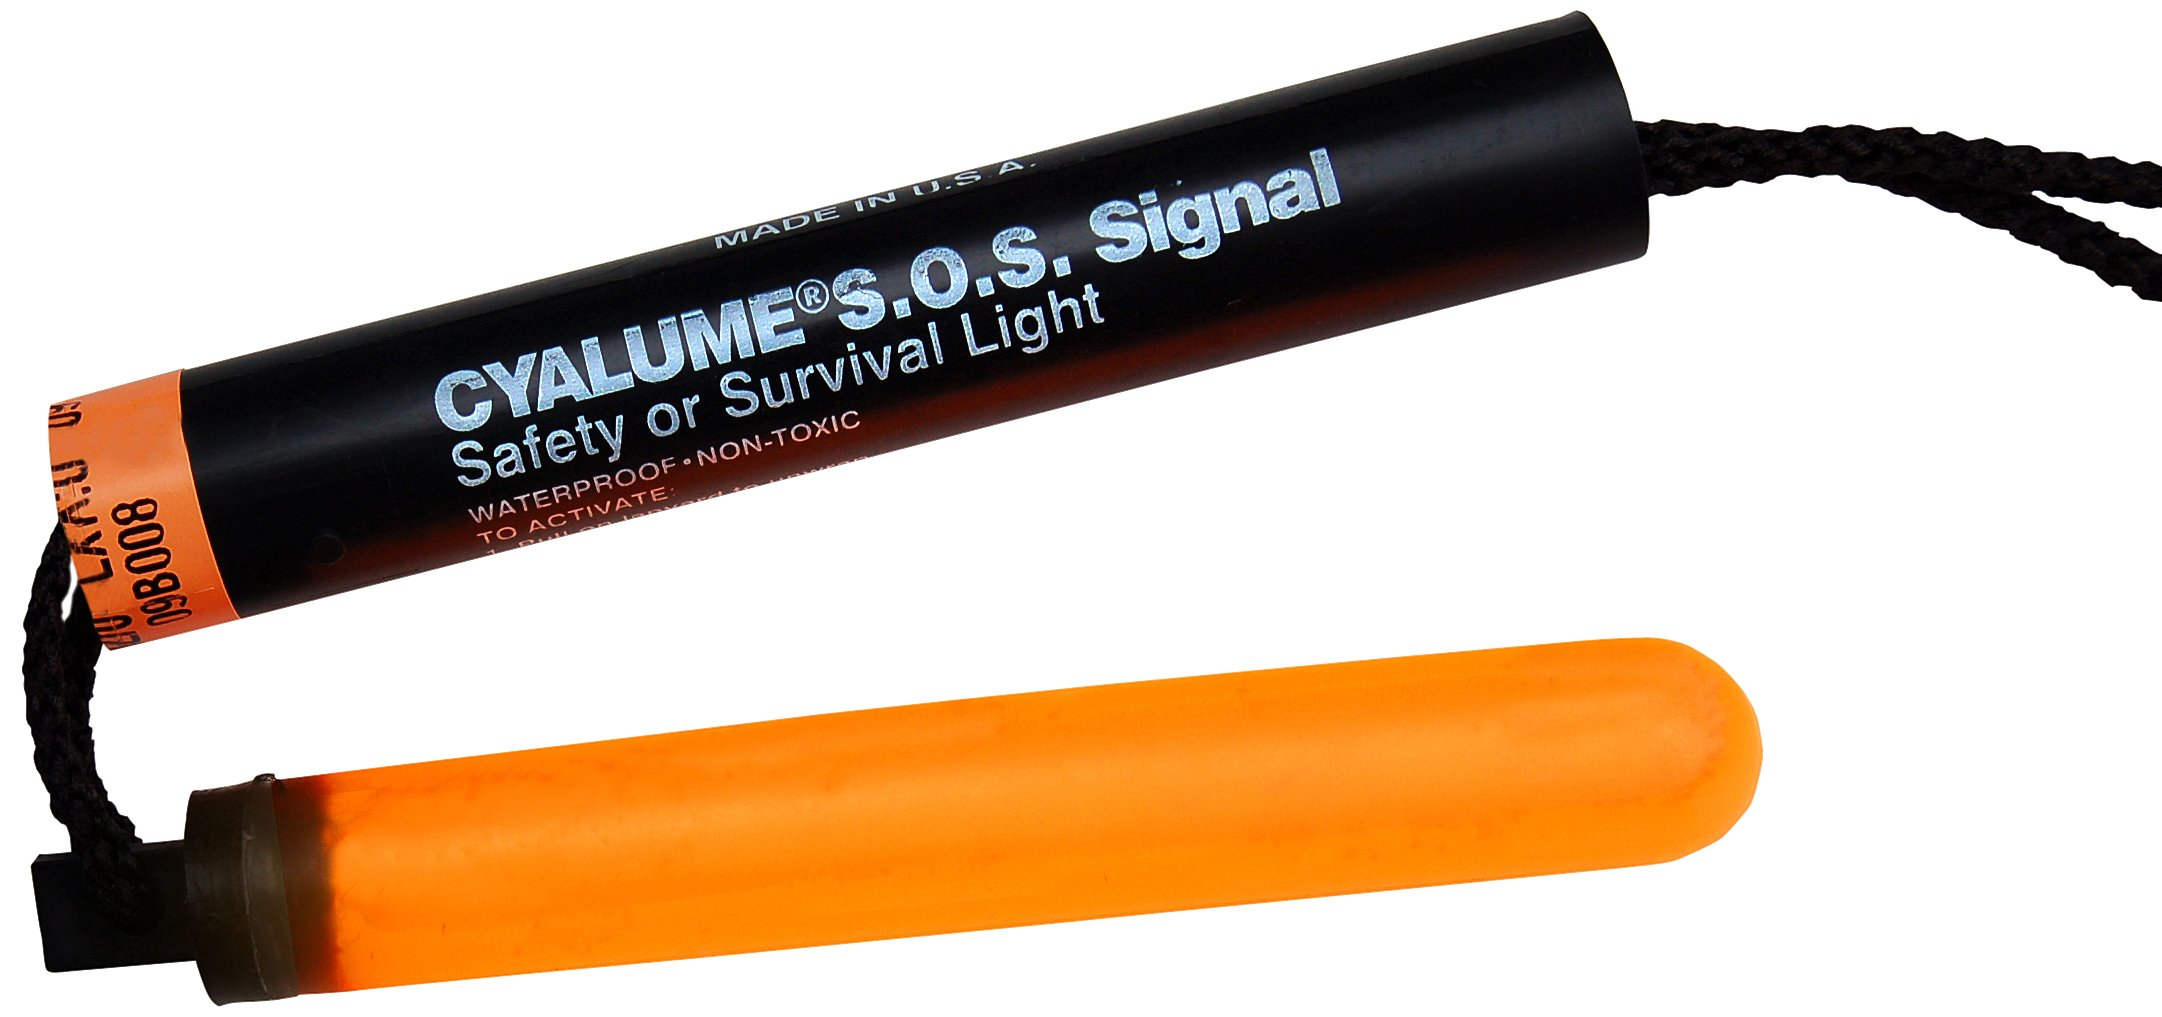 Cyalume ChemLight Military Grade SOS Signal Light Chemical Light Sticks, Orange, High Intensity, 5-1/4'' Long, 5 Minute Duration (Case of 50)